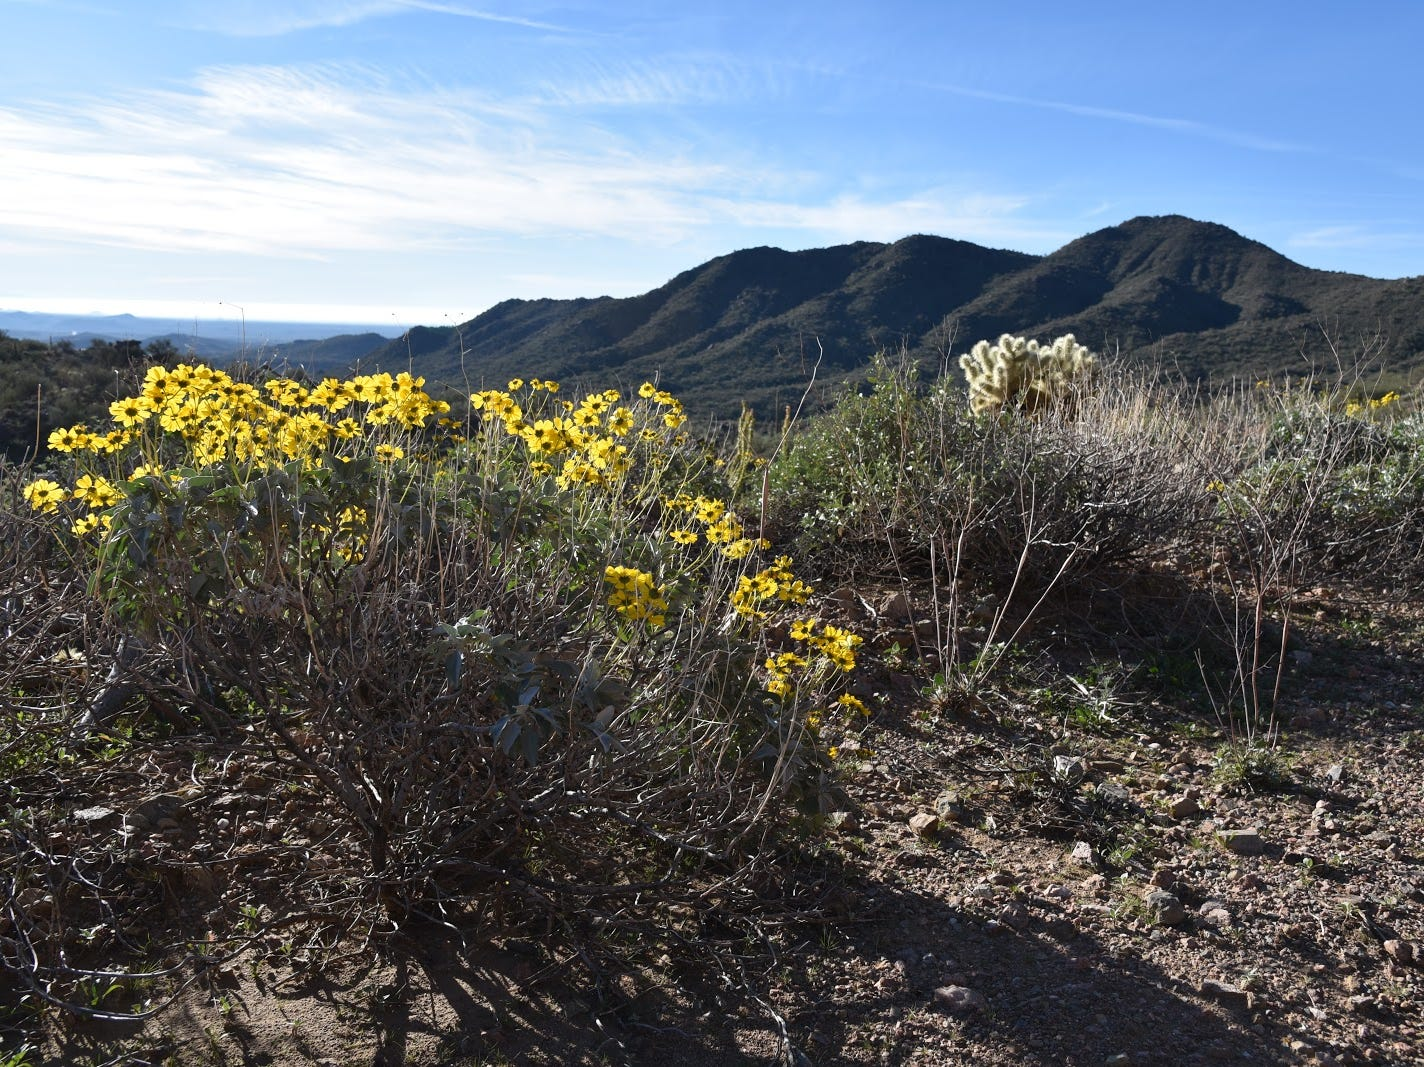 Brittlebush are prolific bloomers along the trails.